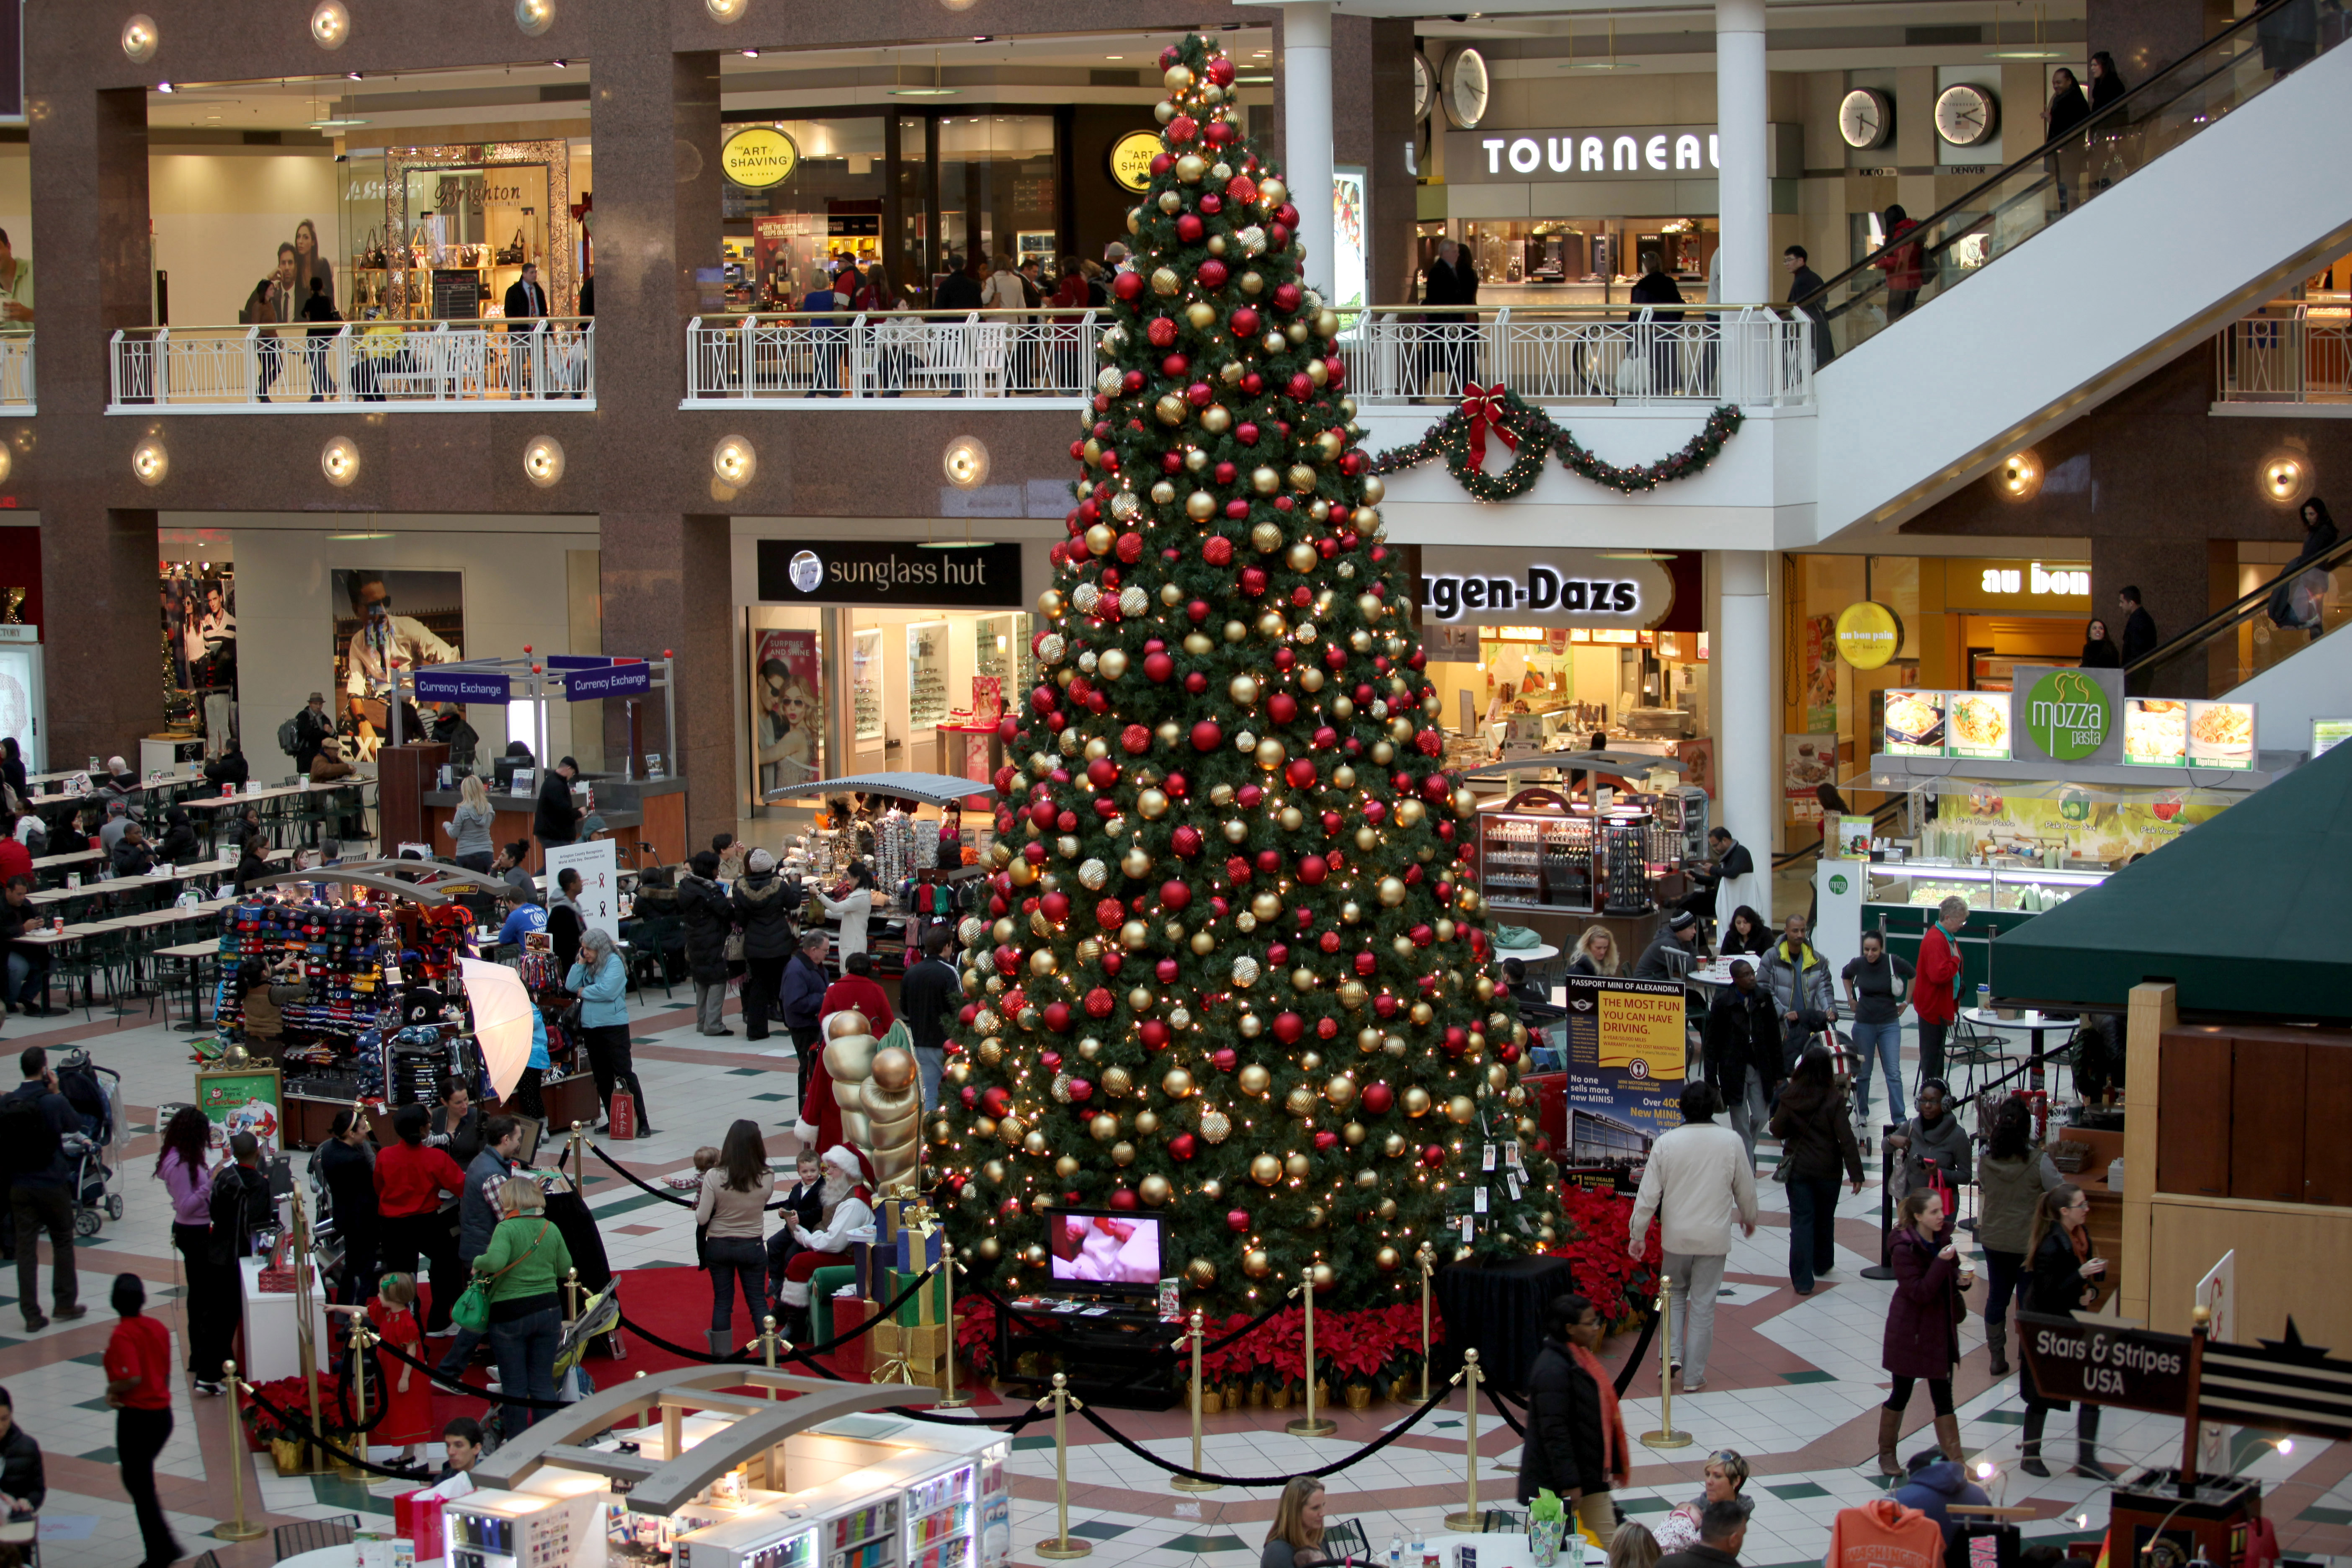 Half of All Gift Givers Plan to Shop Online for the Holidays